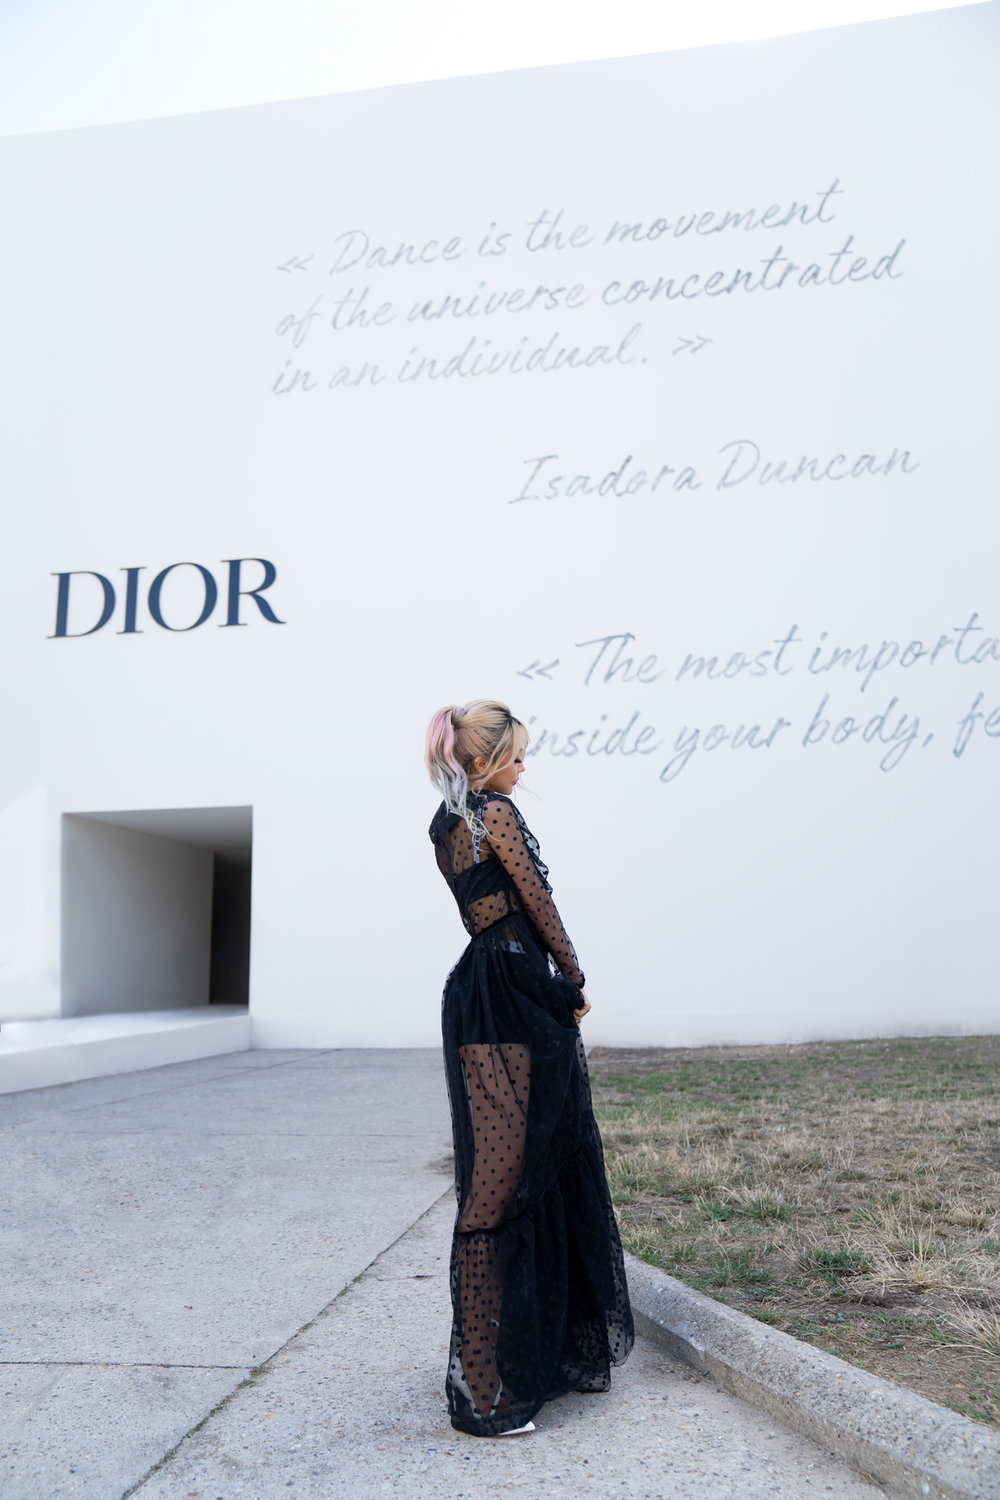 Wengie poses in front of the grand entrance to the Dior show